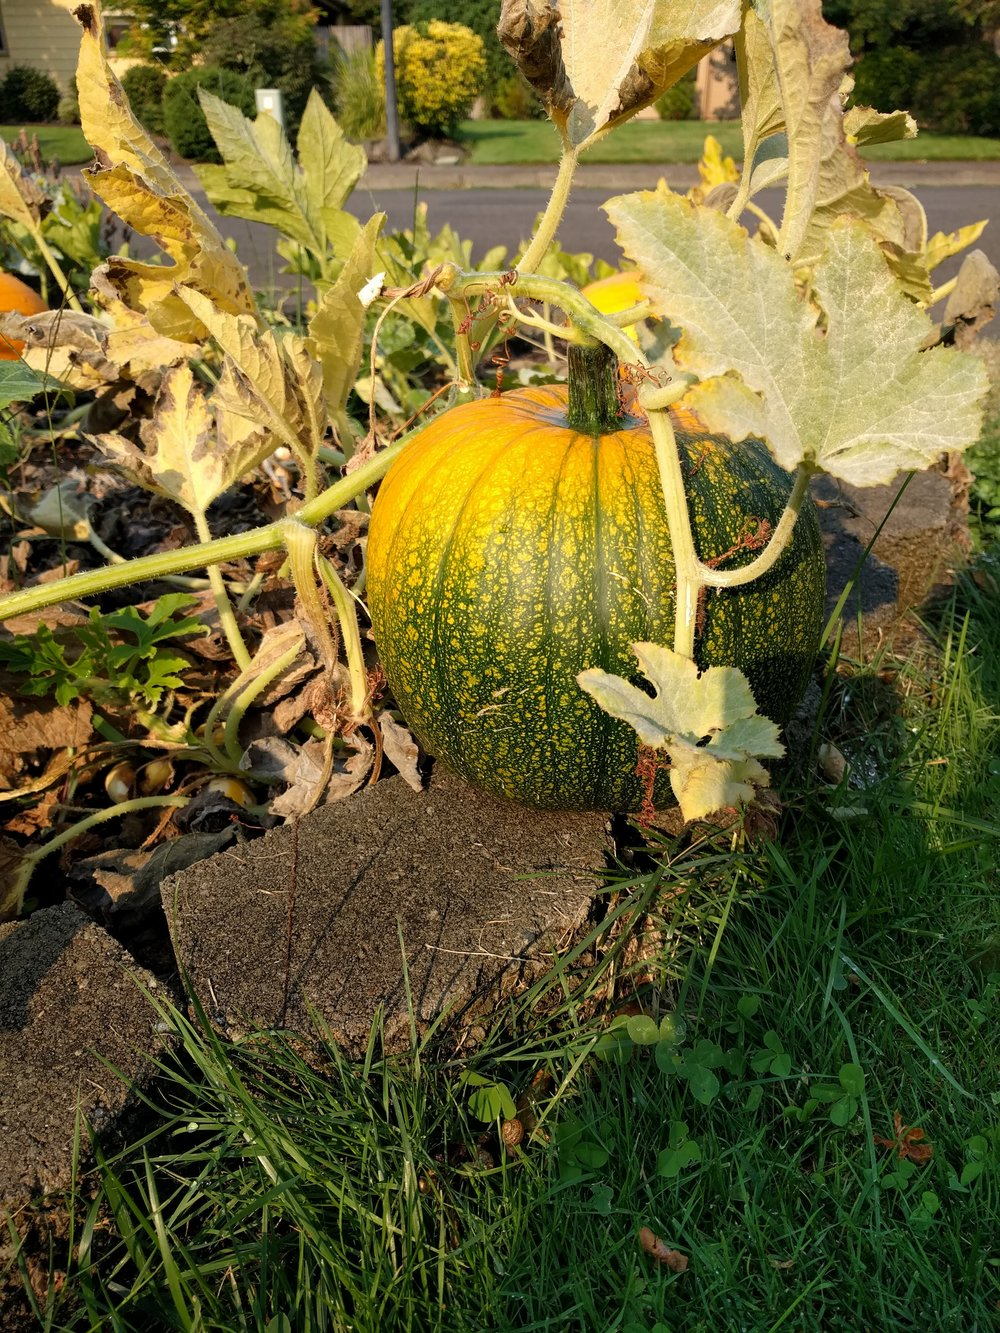 This past June our kids planted pumpkin seeds and grew them through the summer.